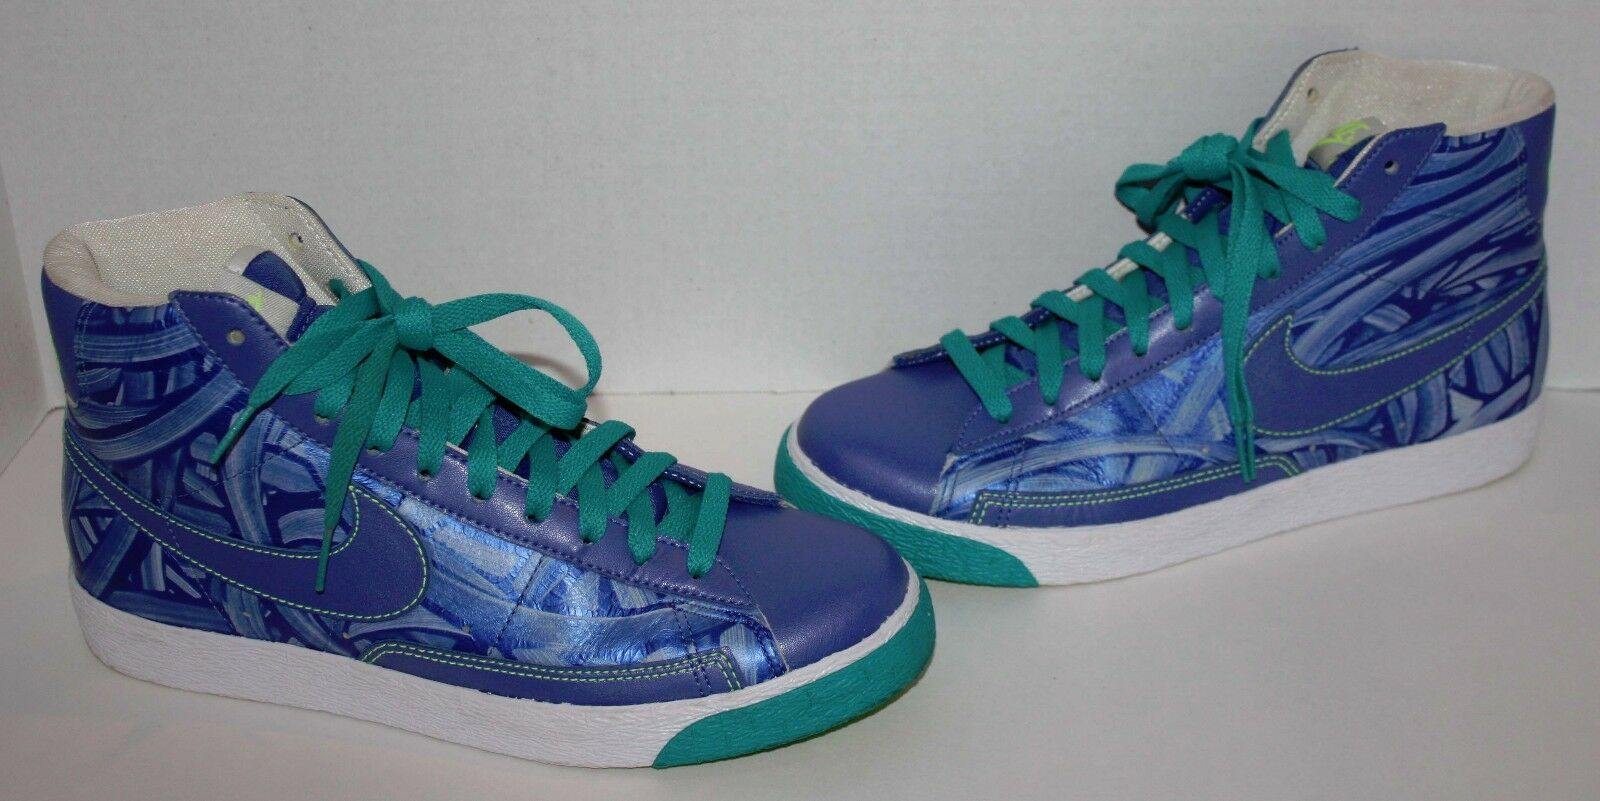 Womens NIKE Blue Leather High-Tops Sneakers Shoes Size 10